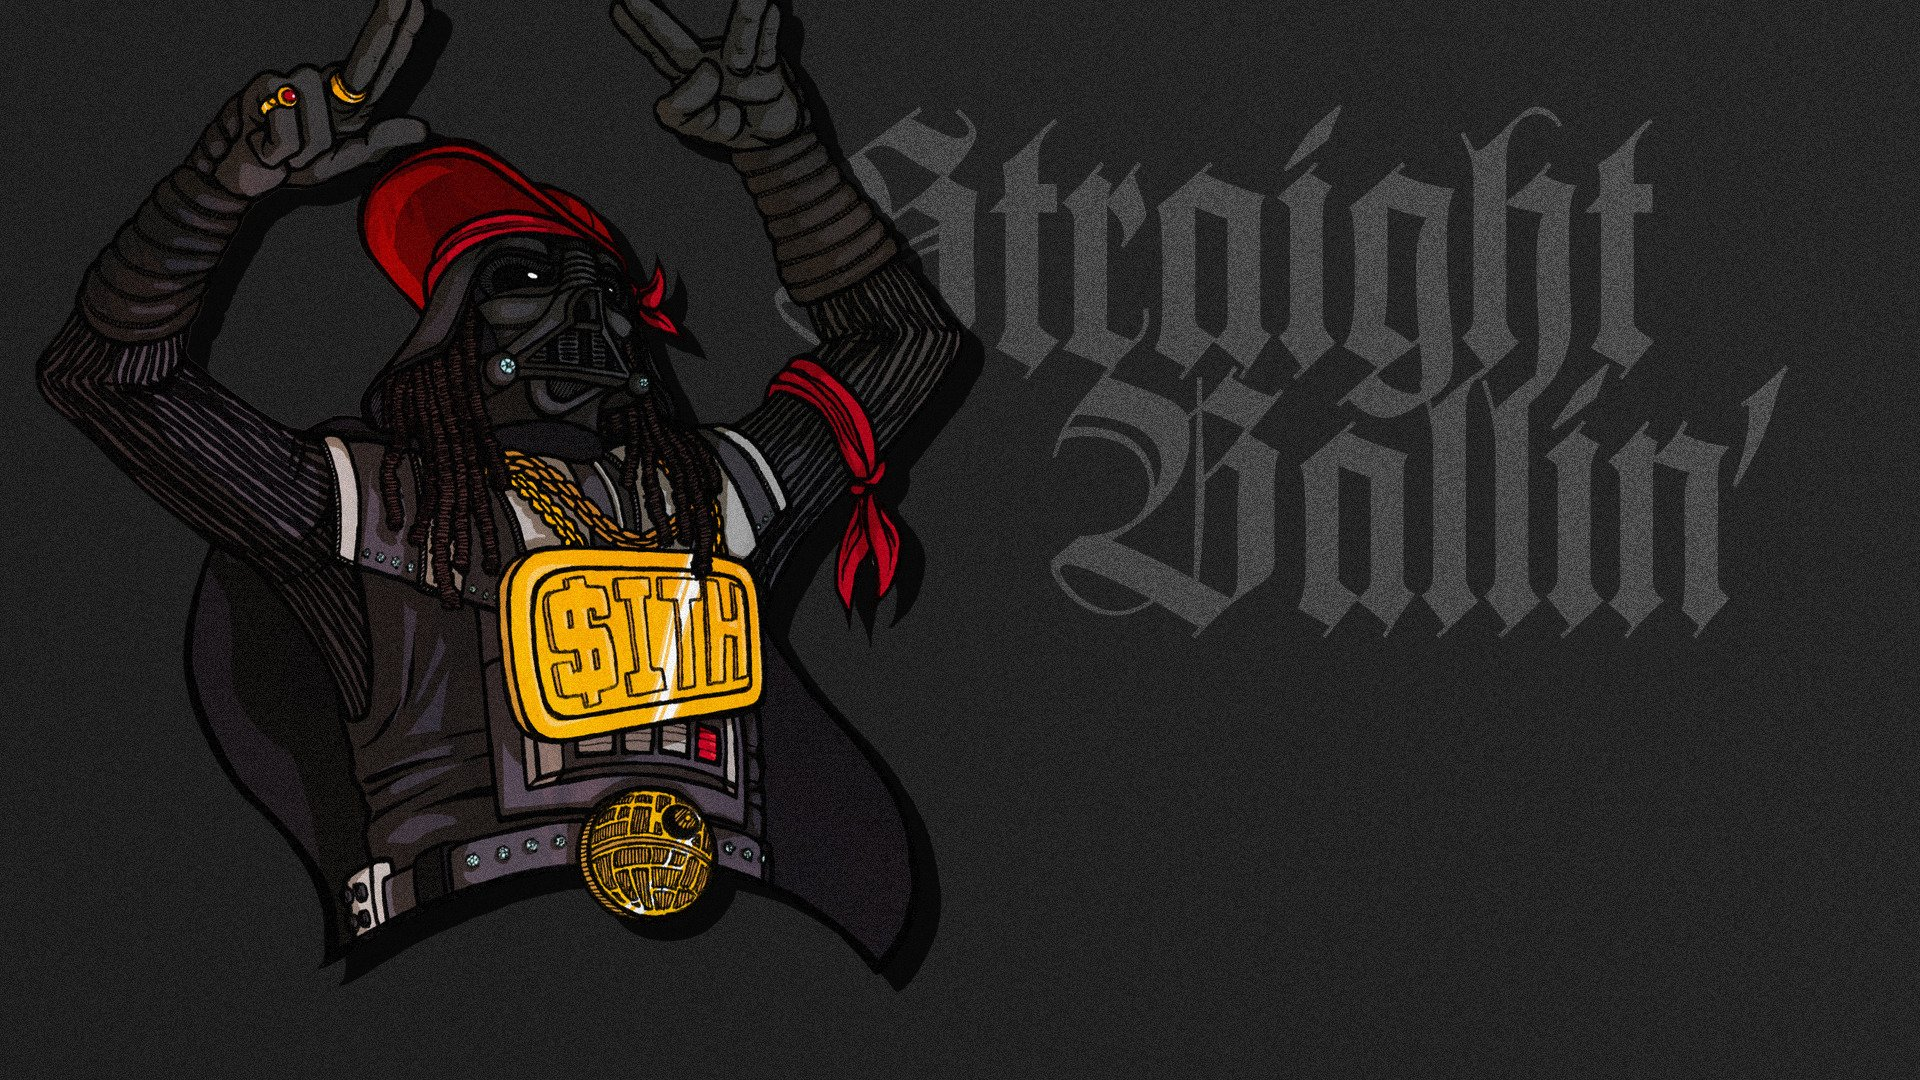 gangster-rapper-darth-vader-star-wars-wallpapers